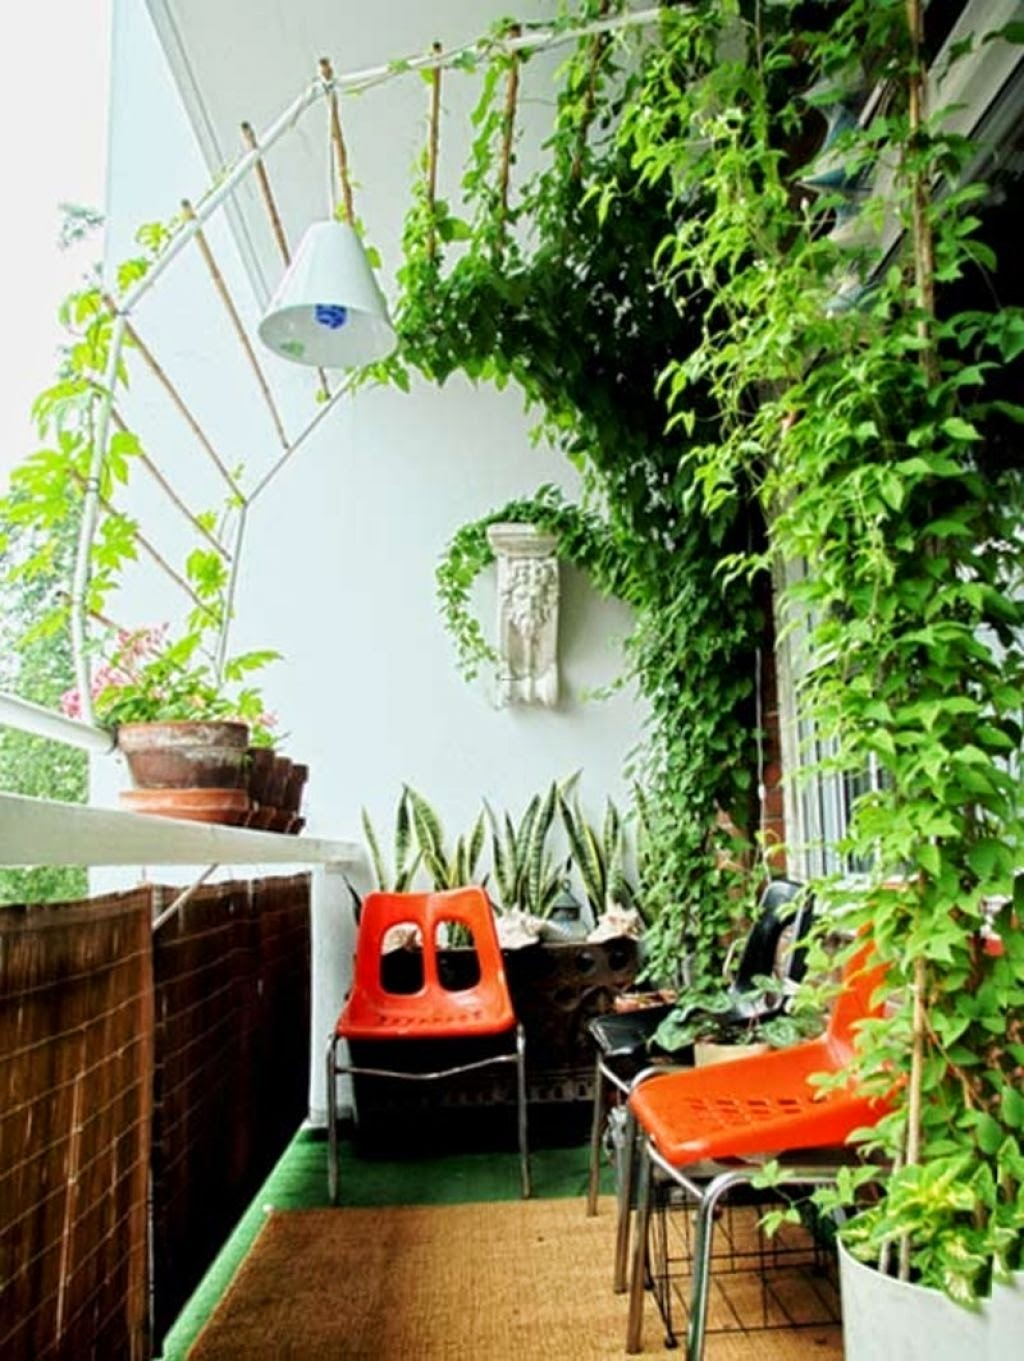 Balcony garden ideas and photos.